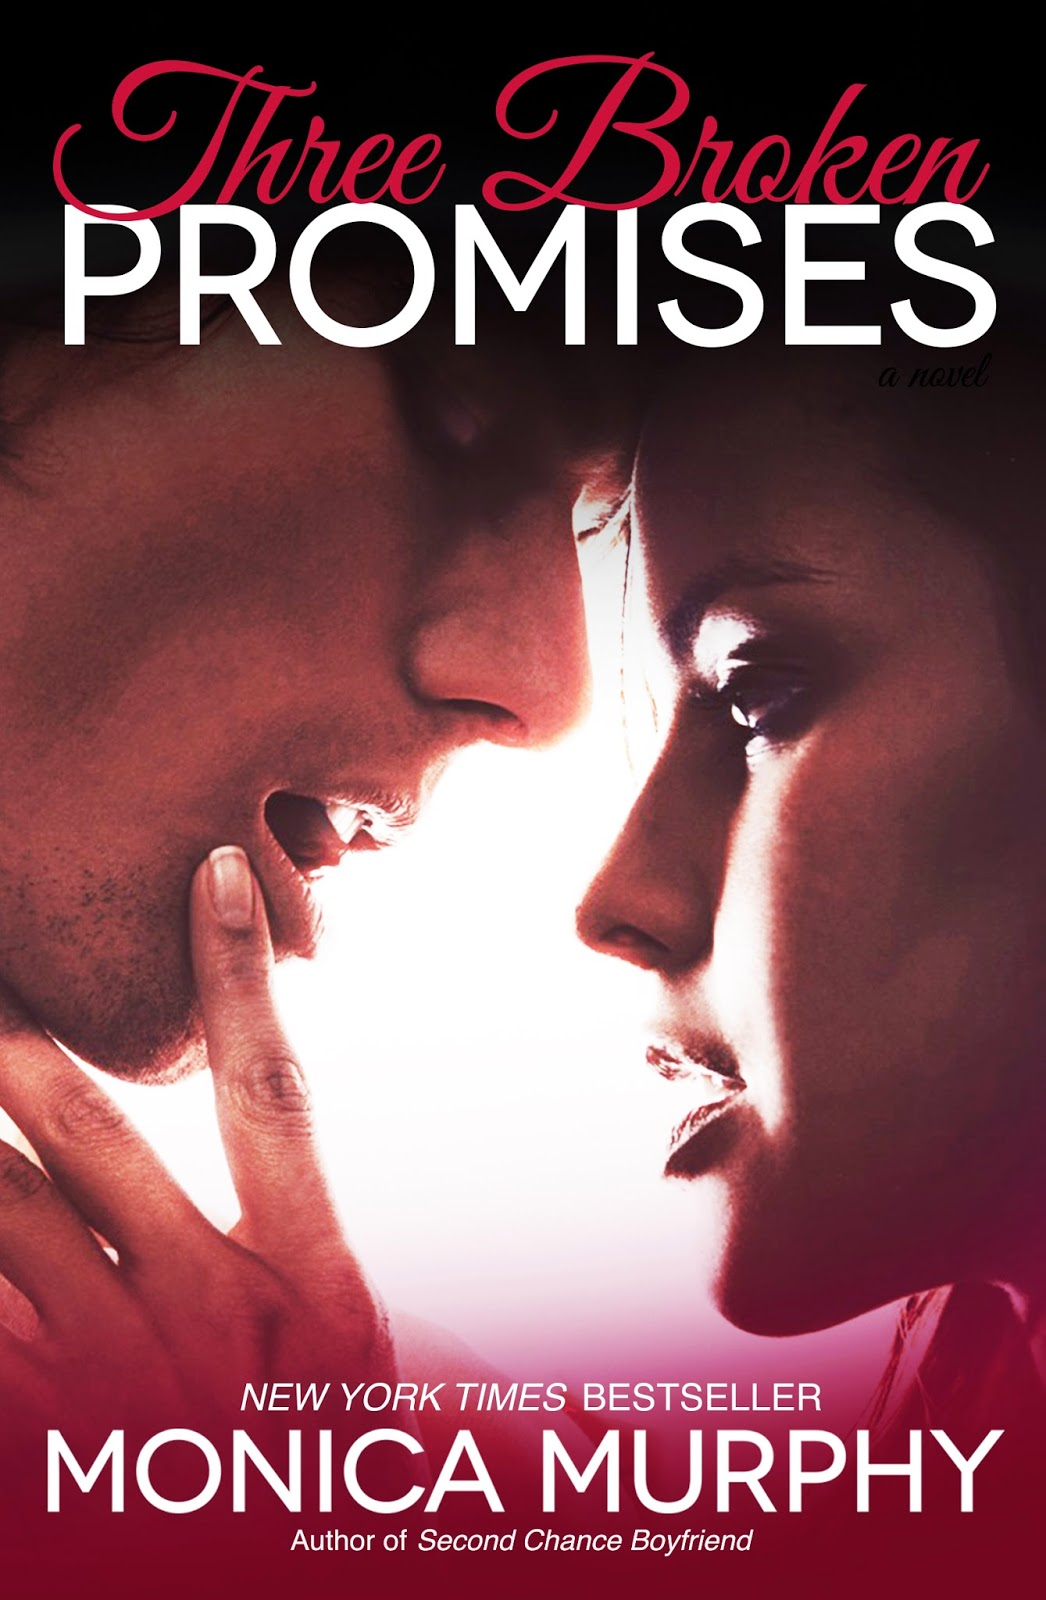 https://www.goodreads.com/book/show/17969384-three-broken-promises